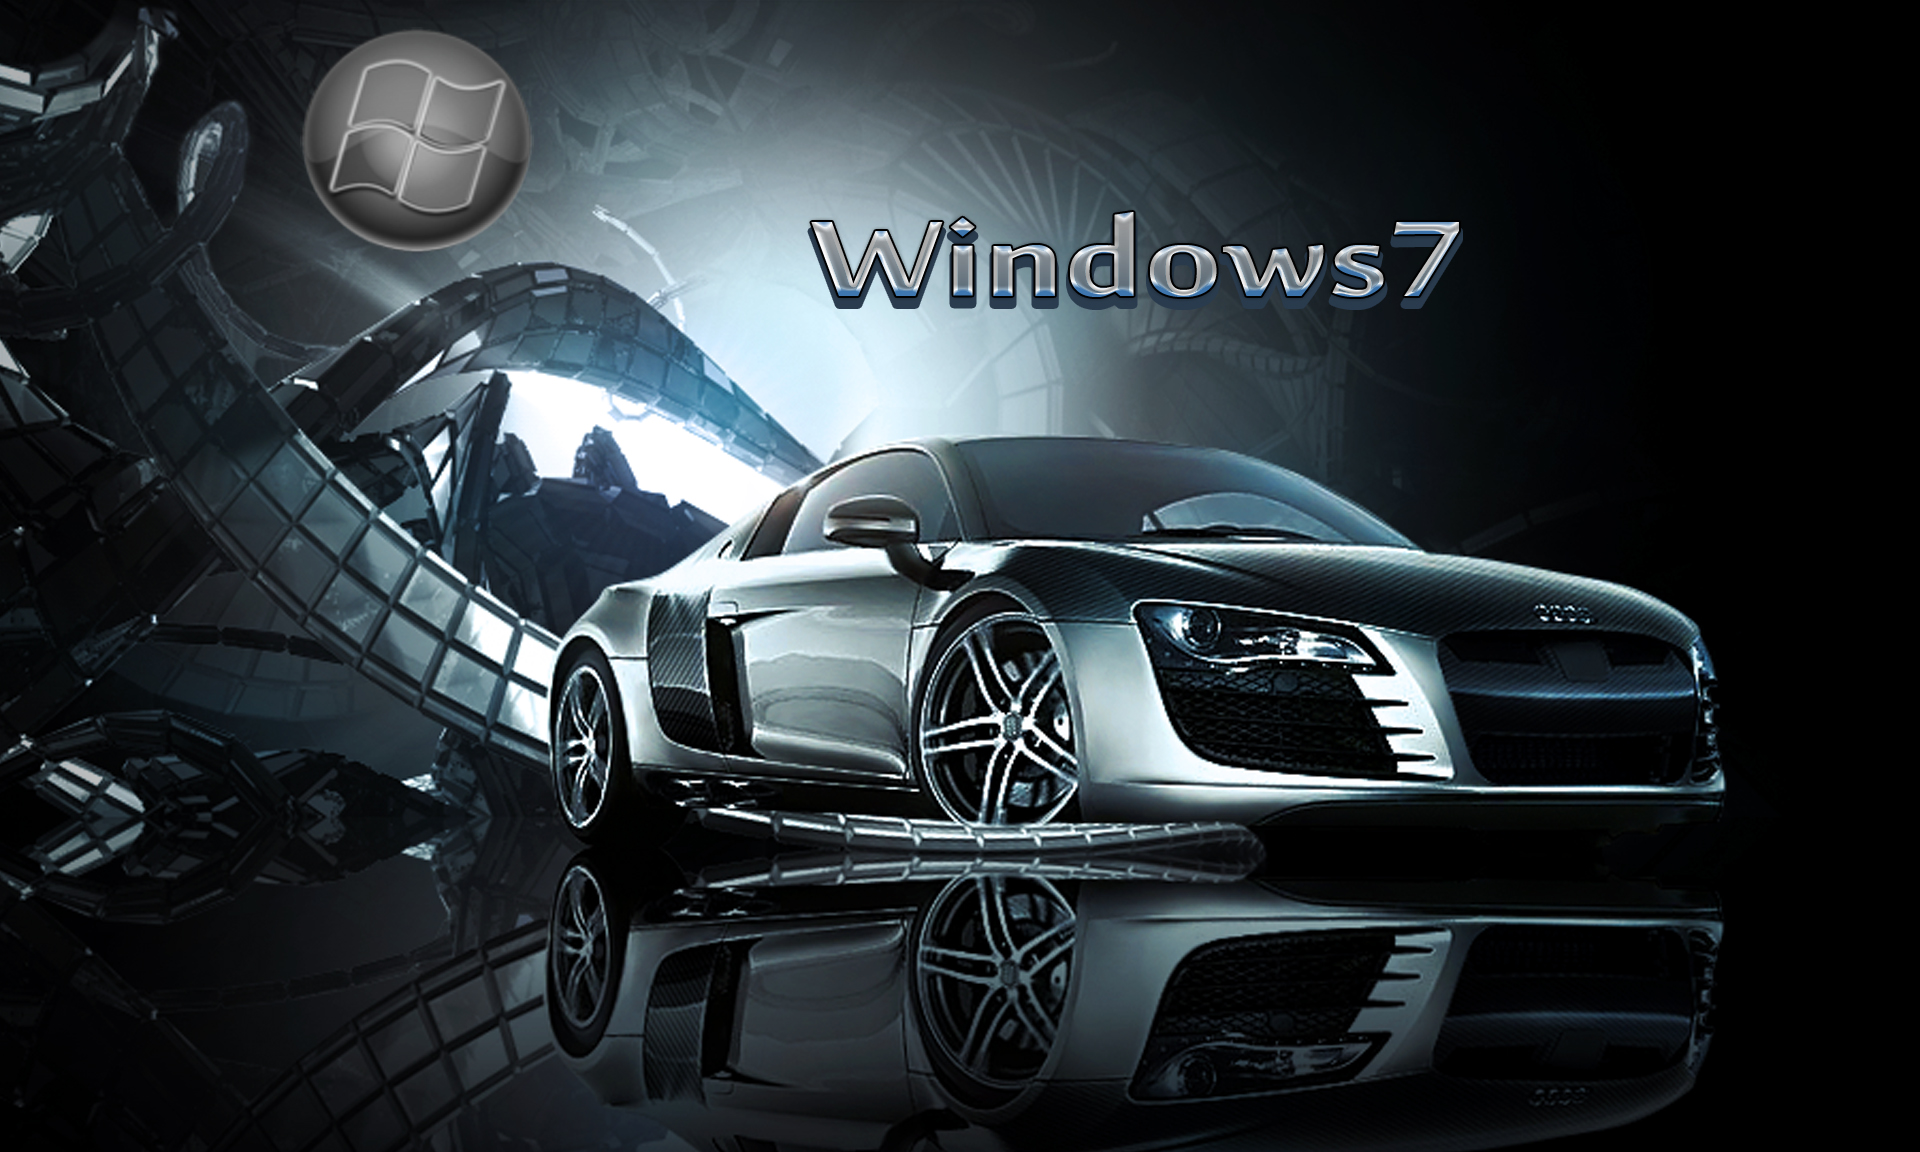 Wallpaper download of cars - Windows7 Car Wallpaper By Kubines Customization Wallpaper Mac Pc Os